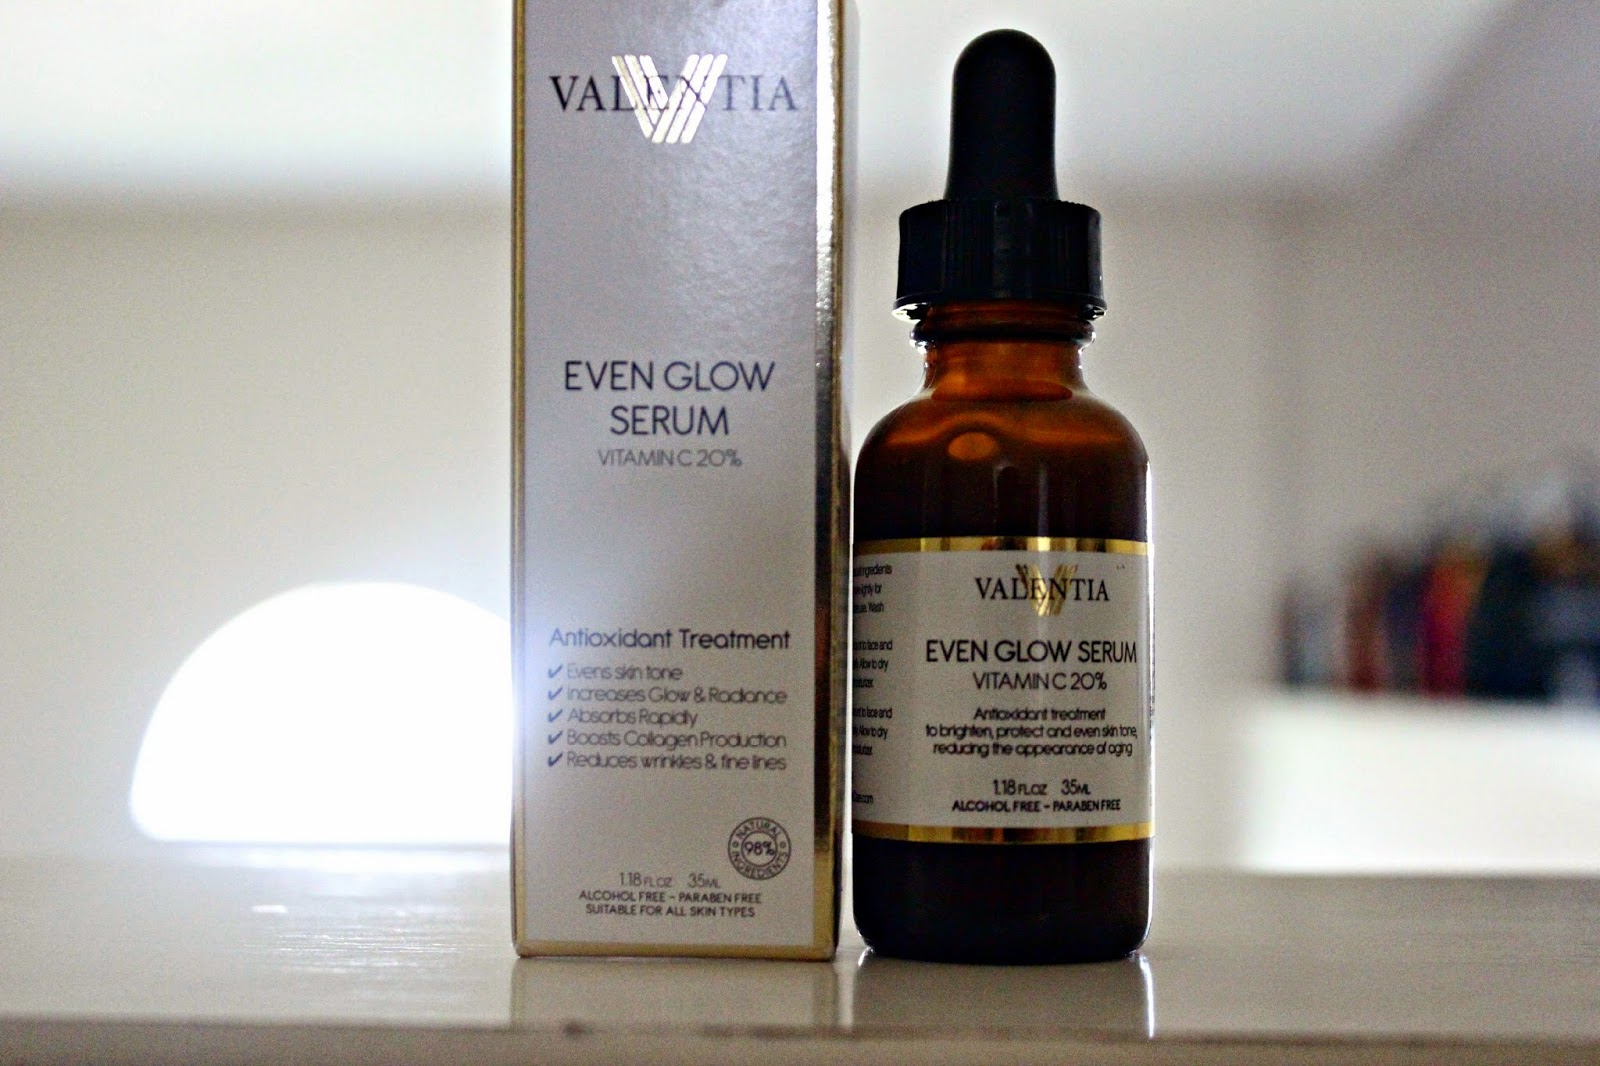 Valentia Even Glow Serum Ingredients, vitamin c, Antioxidant Treatment,  Natural serum, Organic serum, Organic Rosehip Oil, Sea Buckthorn Oil, Brightening Serum, Rapid Absorption, Reduce Sun Spots, Reduce Wrinkles,  Boost Collagen Production, even skin tone, increase glow, increase radiance, reduce fine lines,